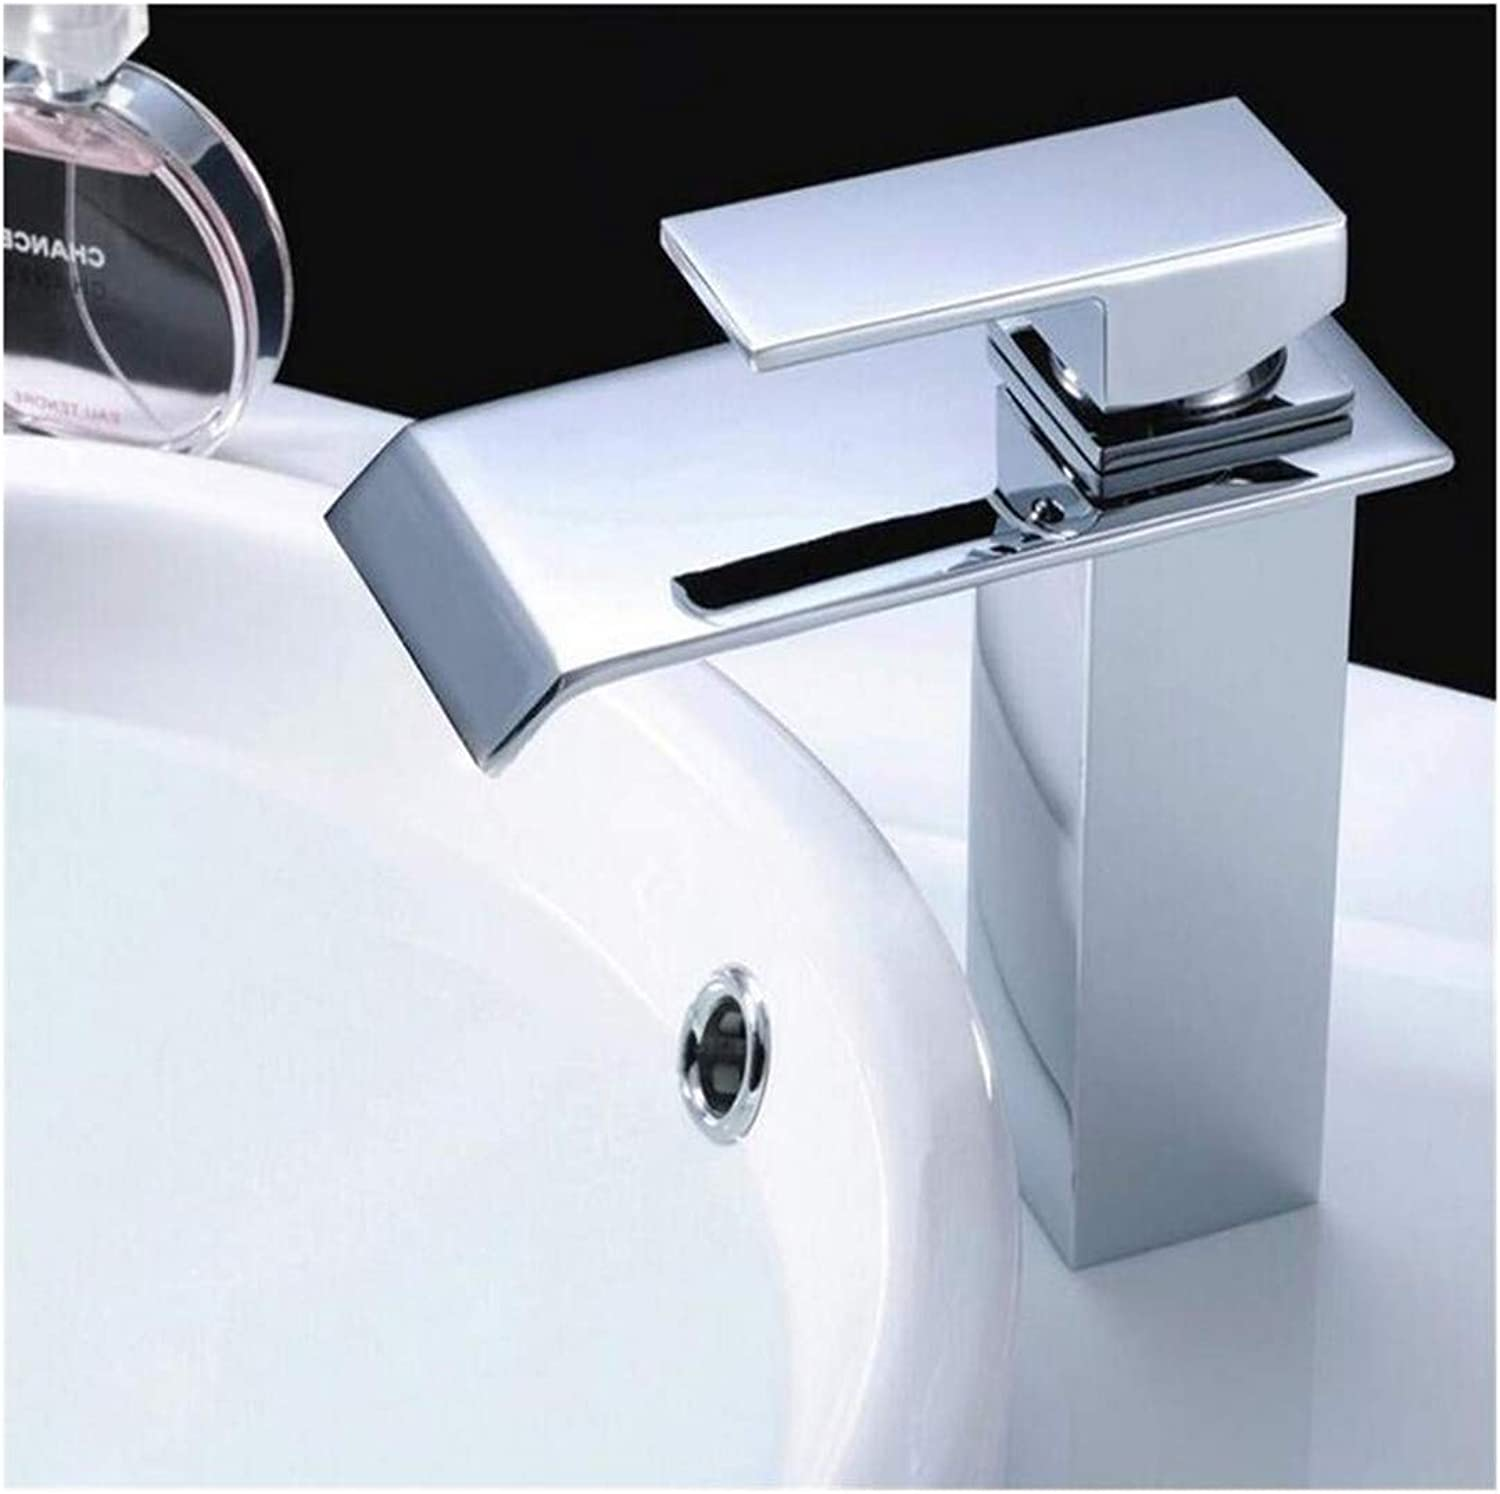 Kitchen Bath Basin Sink Bathroom Taps Washbasin Mixer Chrome Cast Bath Tap Cold H Ot Deck Mounted Ctzl1447